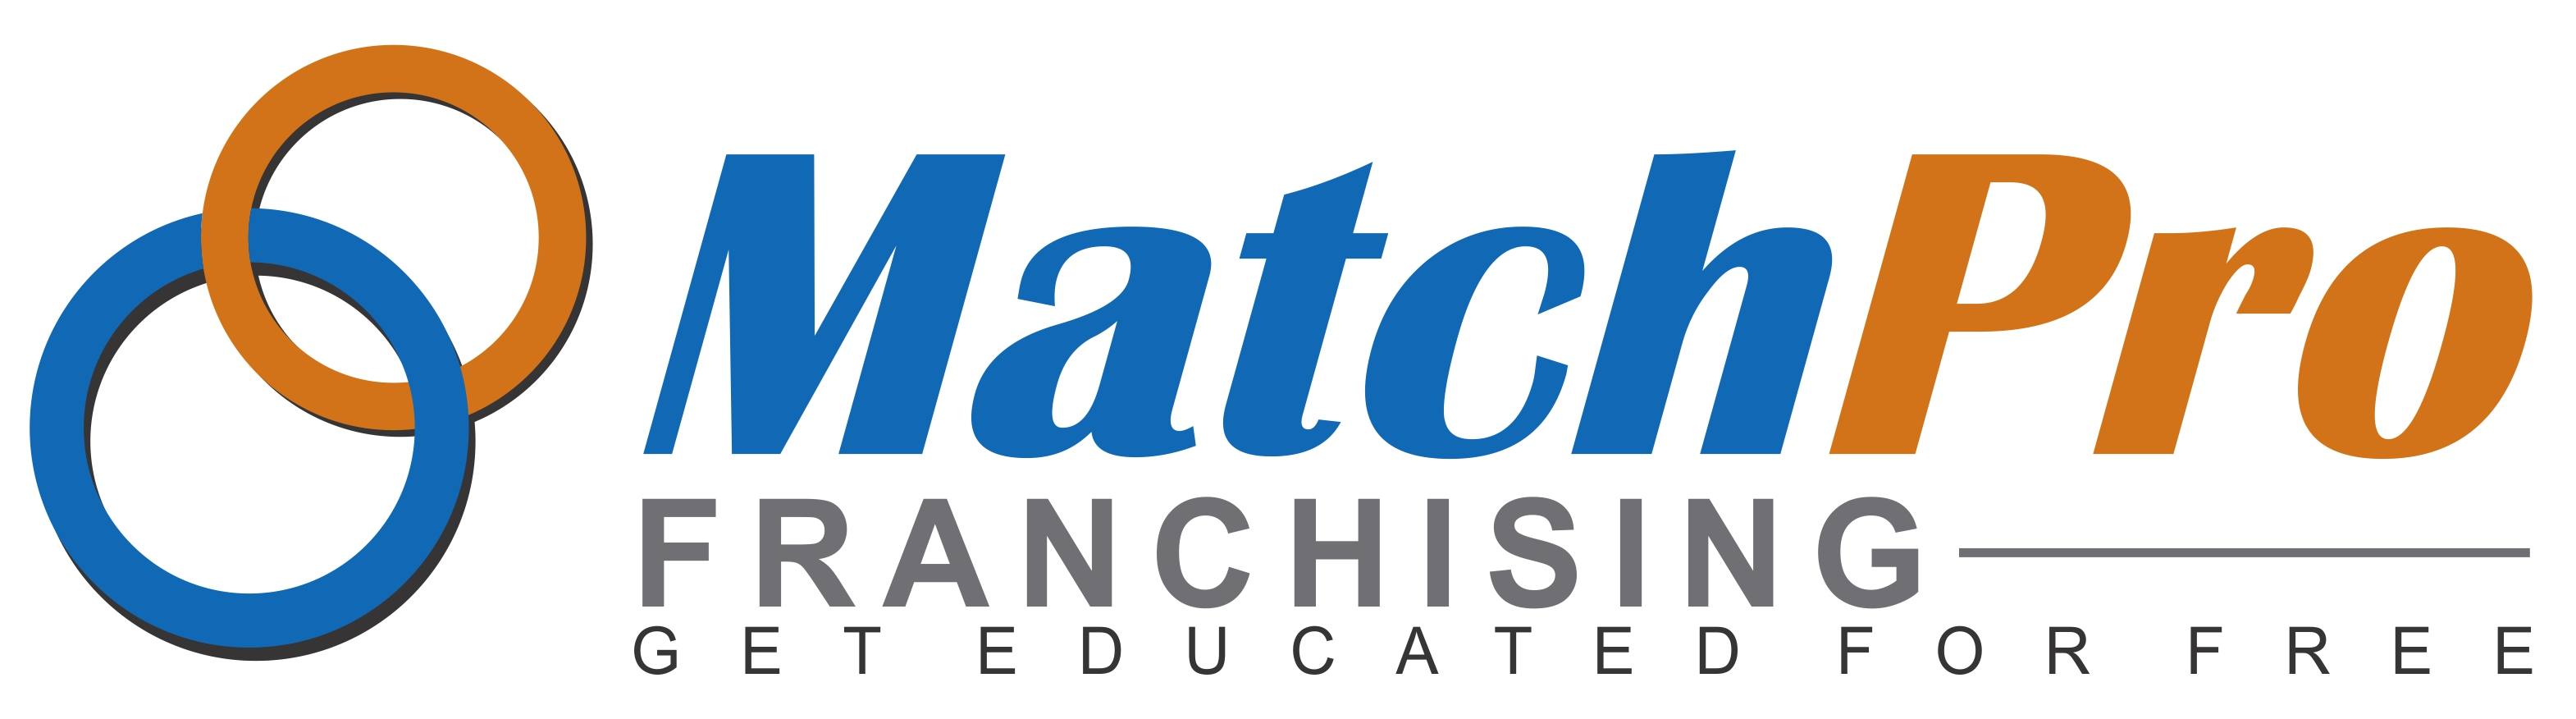 Franchise Coach | Franchise Consultant | MatchPro: